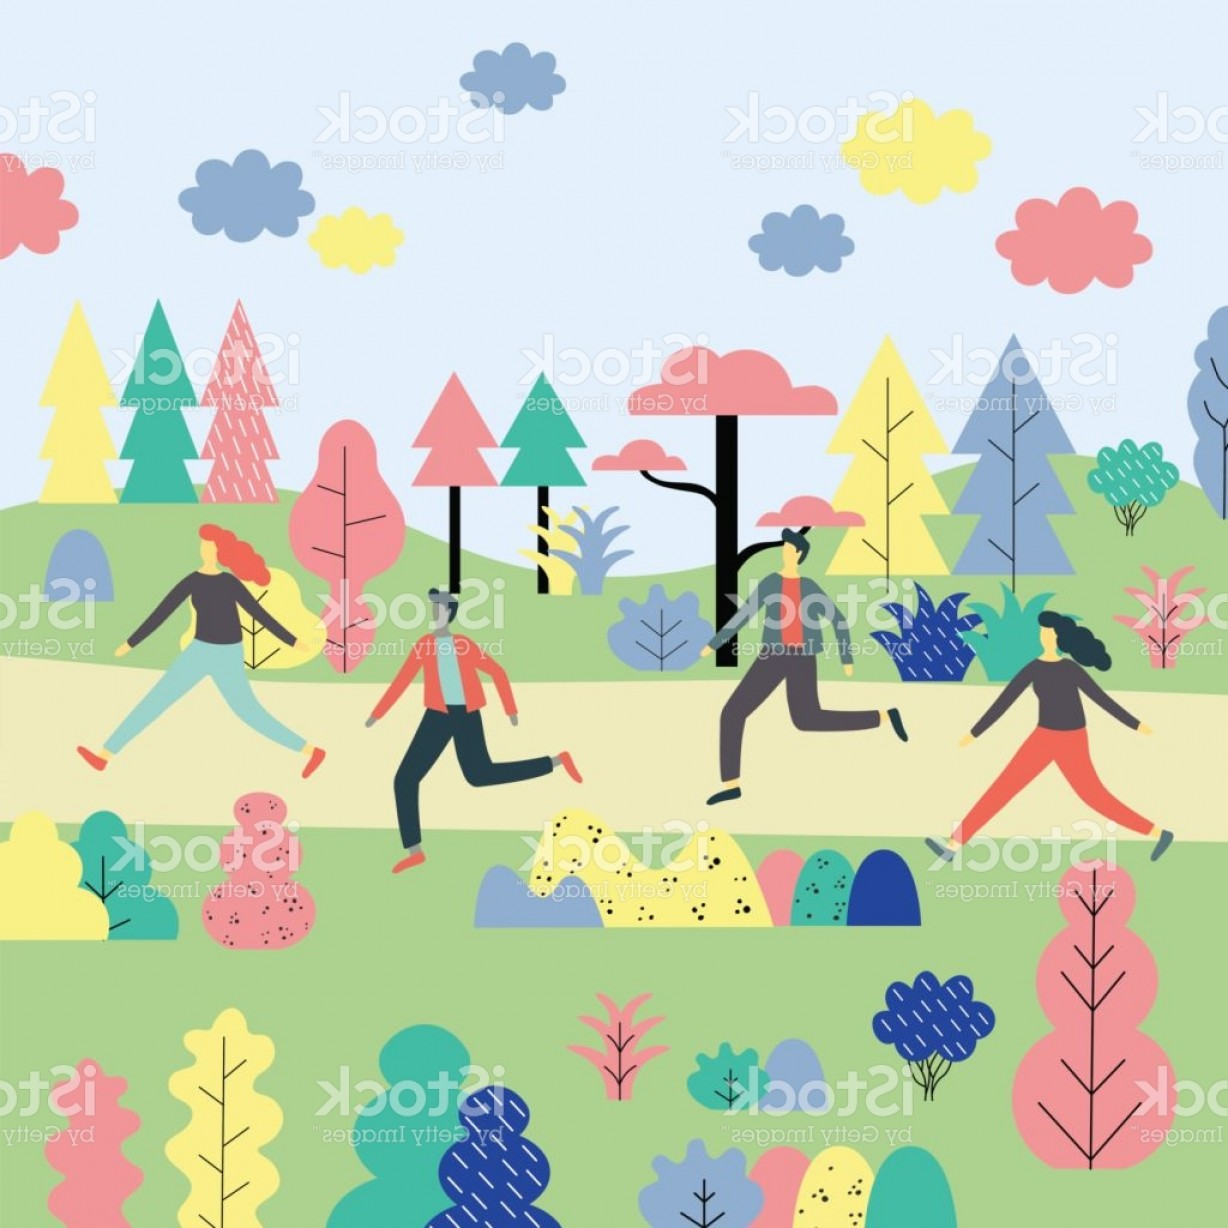 Flat Vector Art And Abstract Forest: Cartoon People Running In A Colorful Forest Abstract Flat Vector Illustration Gm